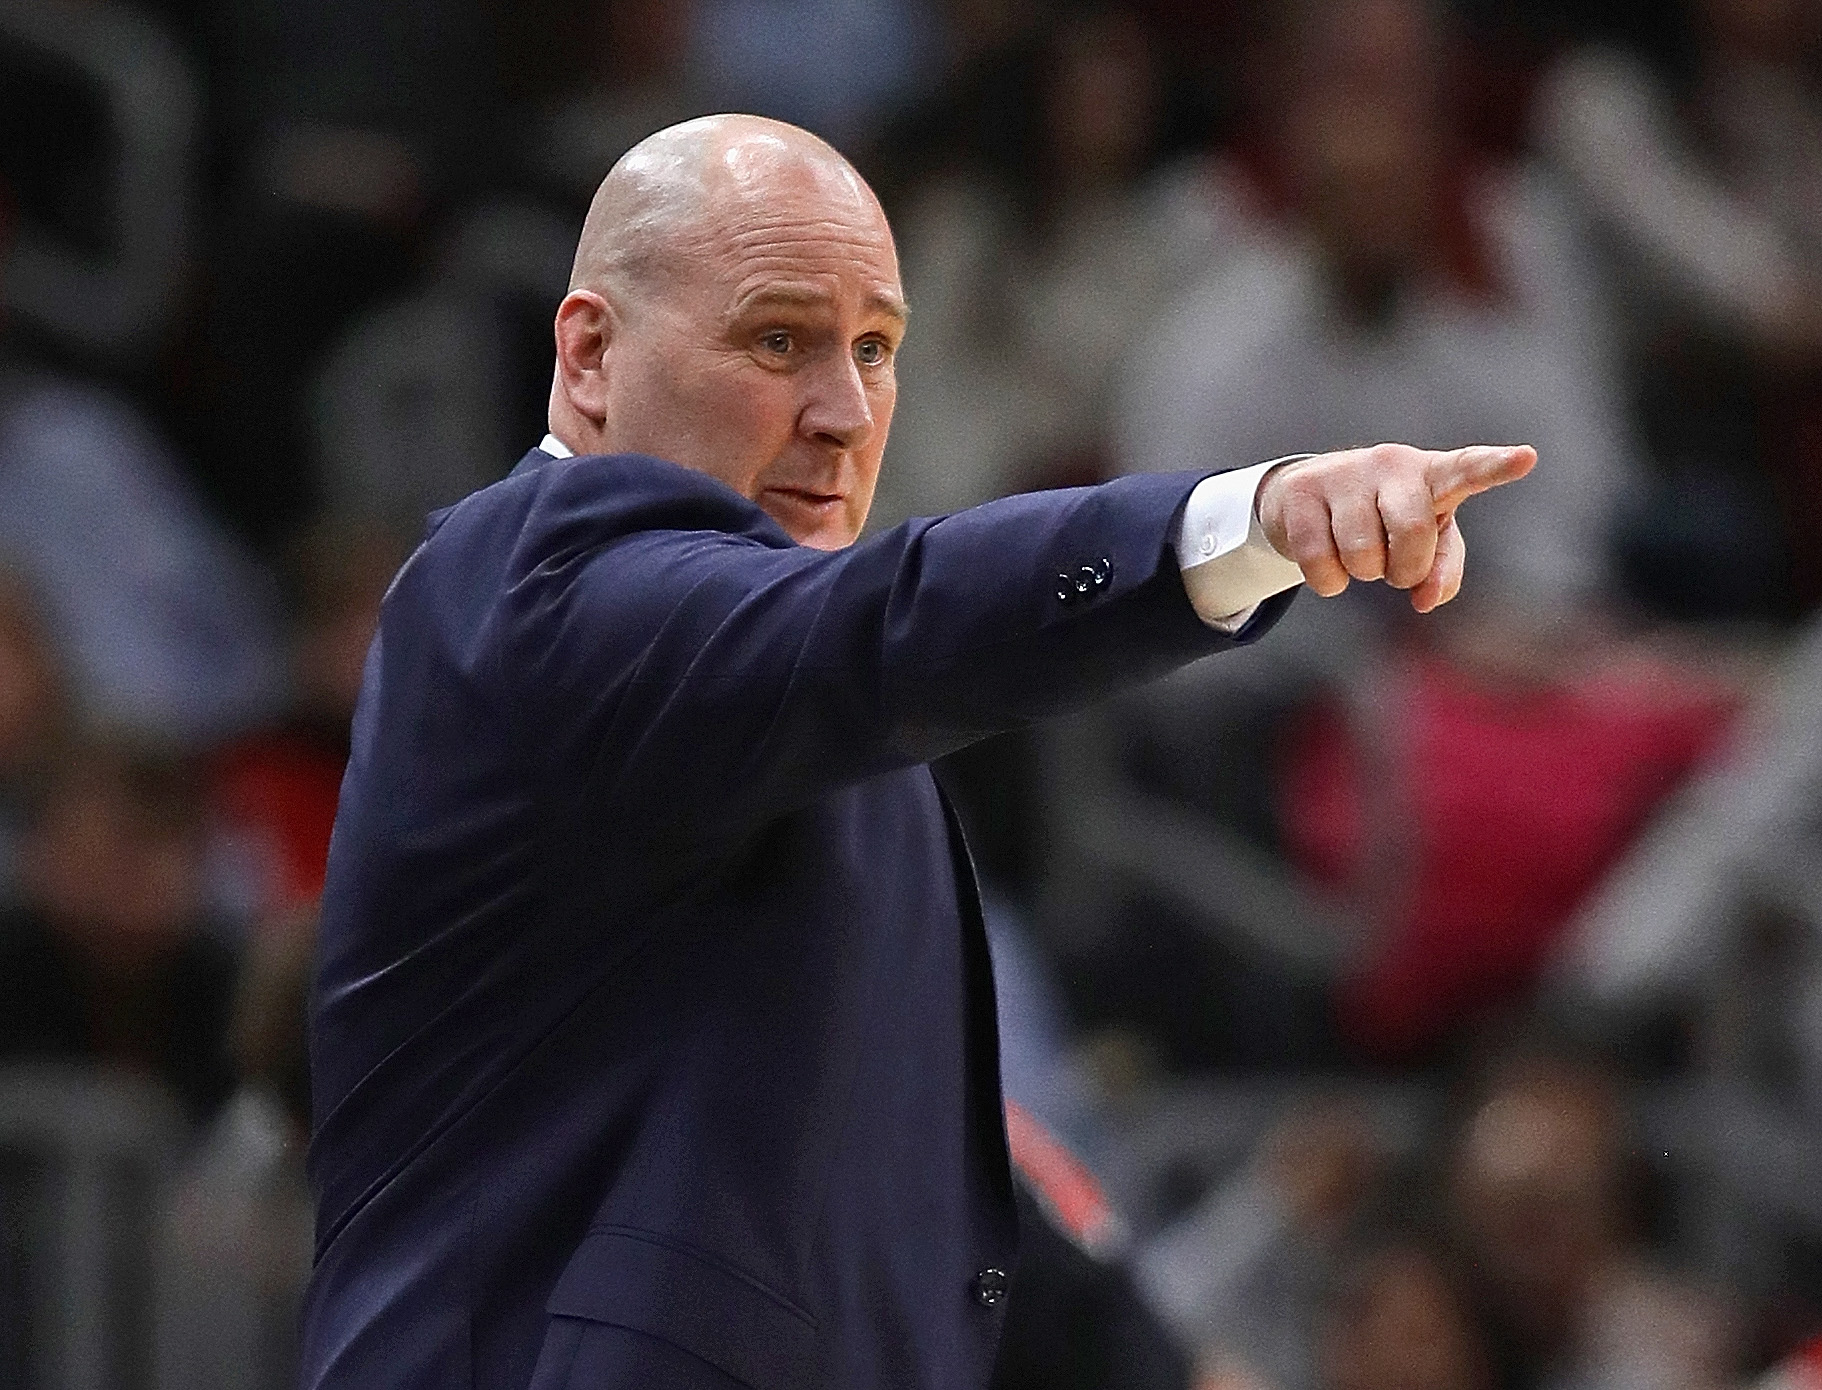 Former Bulls coach Jim Boylen has been picked to coach USA Basketball next month in the first window of qualifying for the 2023 Basketball World Cup.